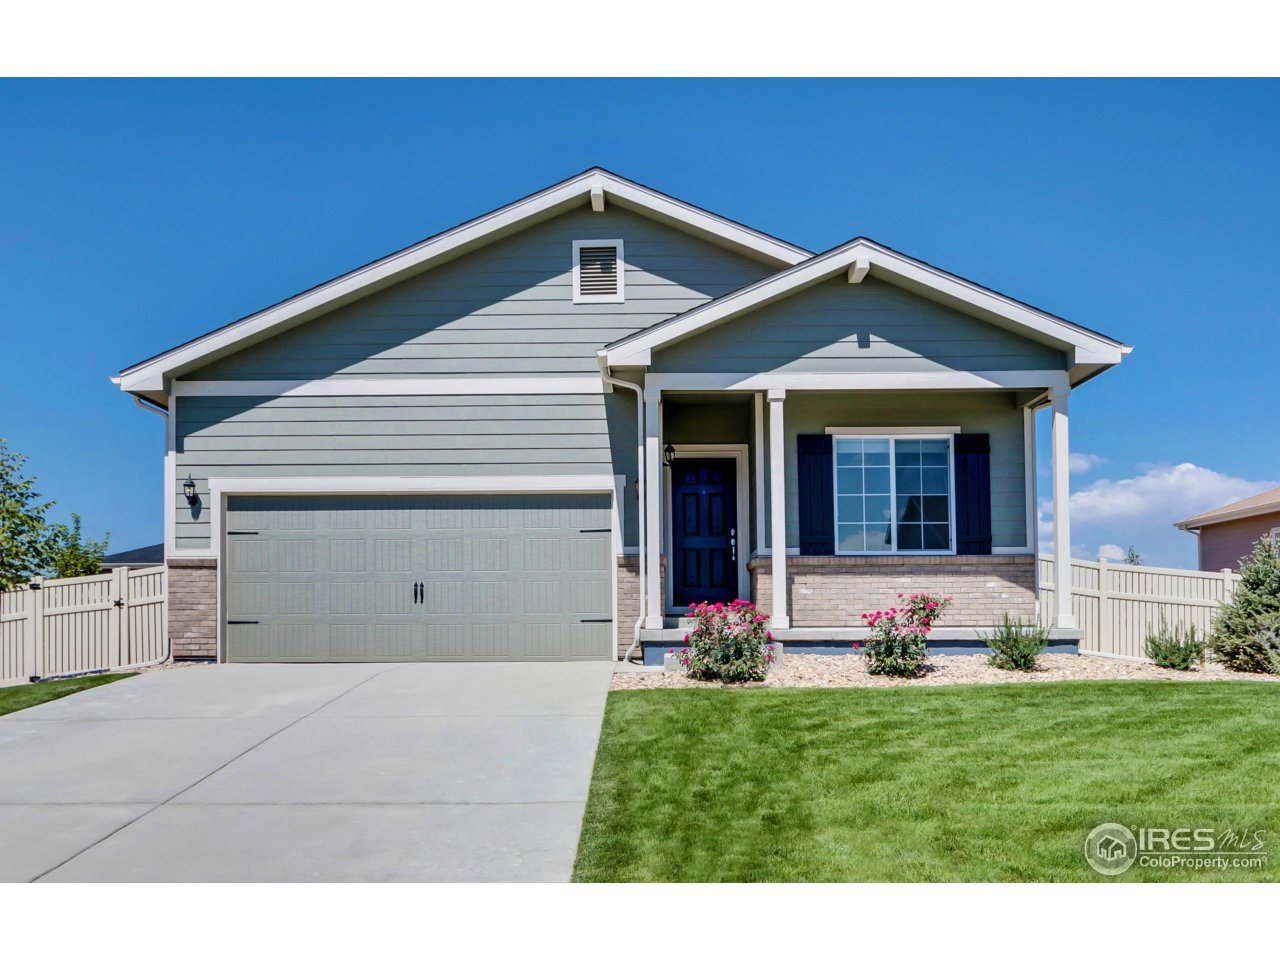 11153 Carbondale St, Firestone CO 80504